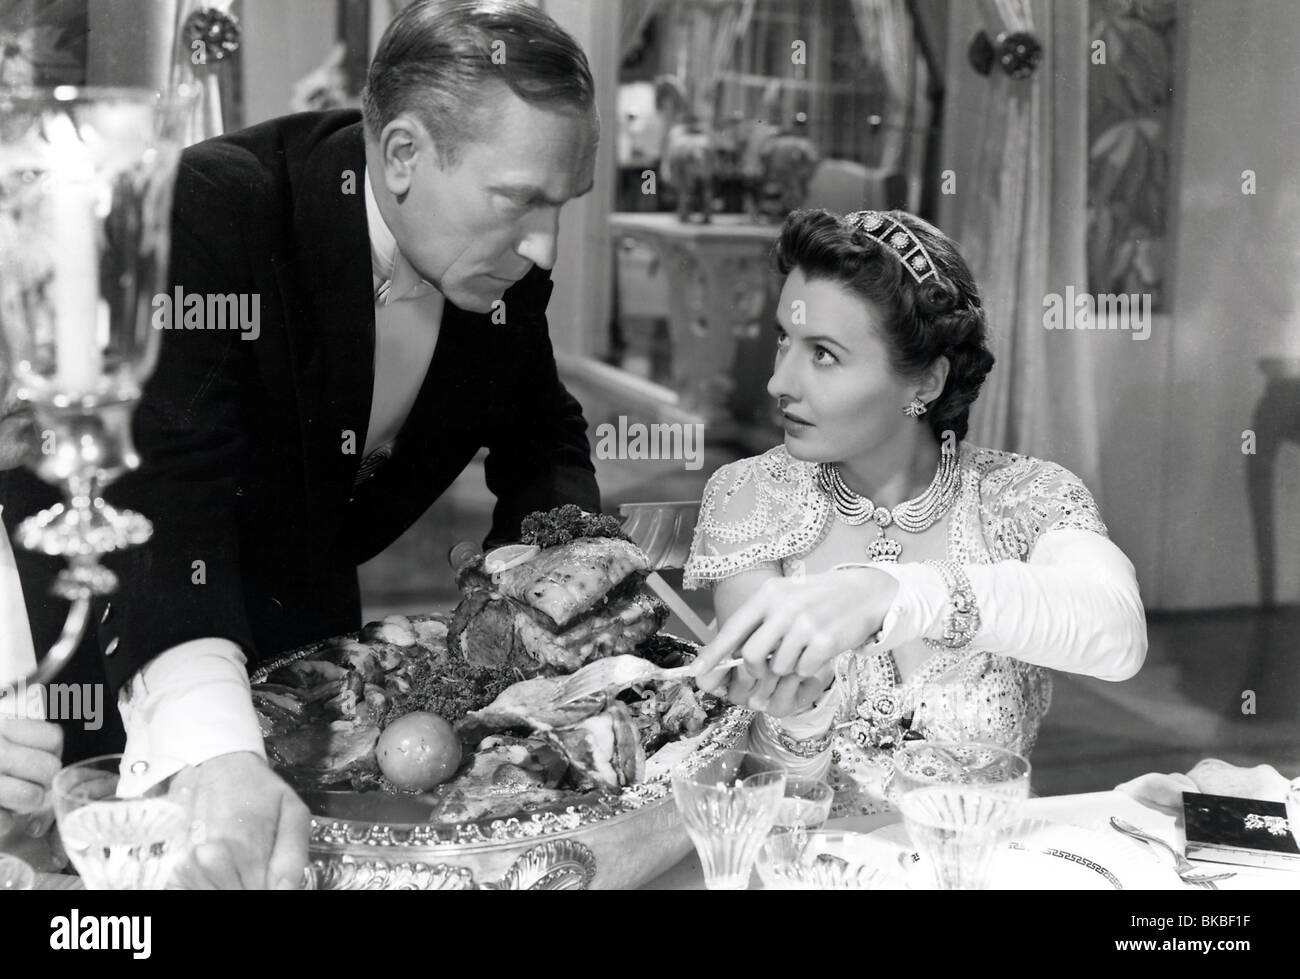 the-lady-eve-1941-william-demarest-barba